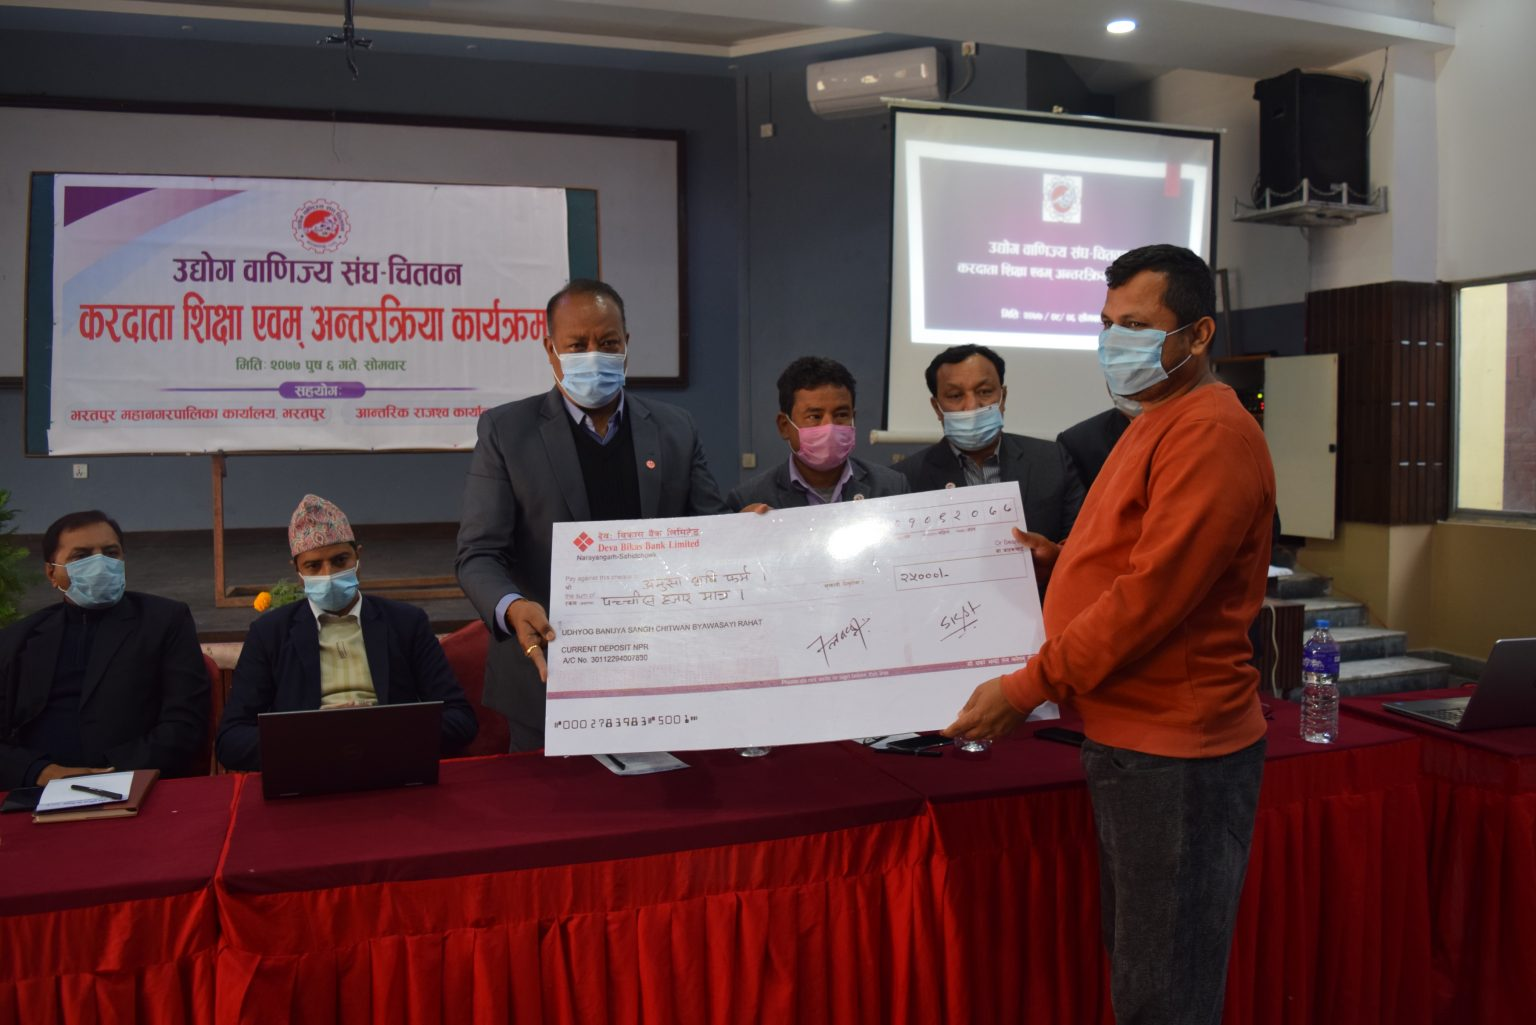 Cheque handover programme by Chitwan Chaber of Commerce & Industry Chitwan